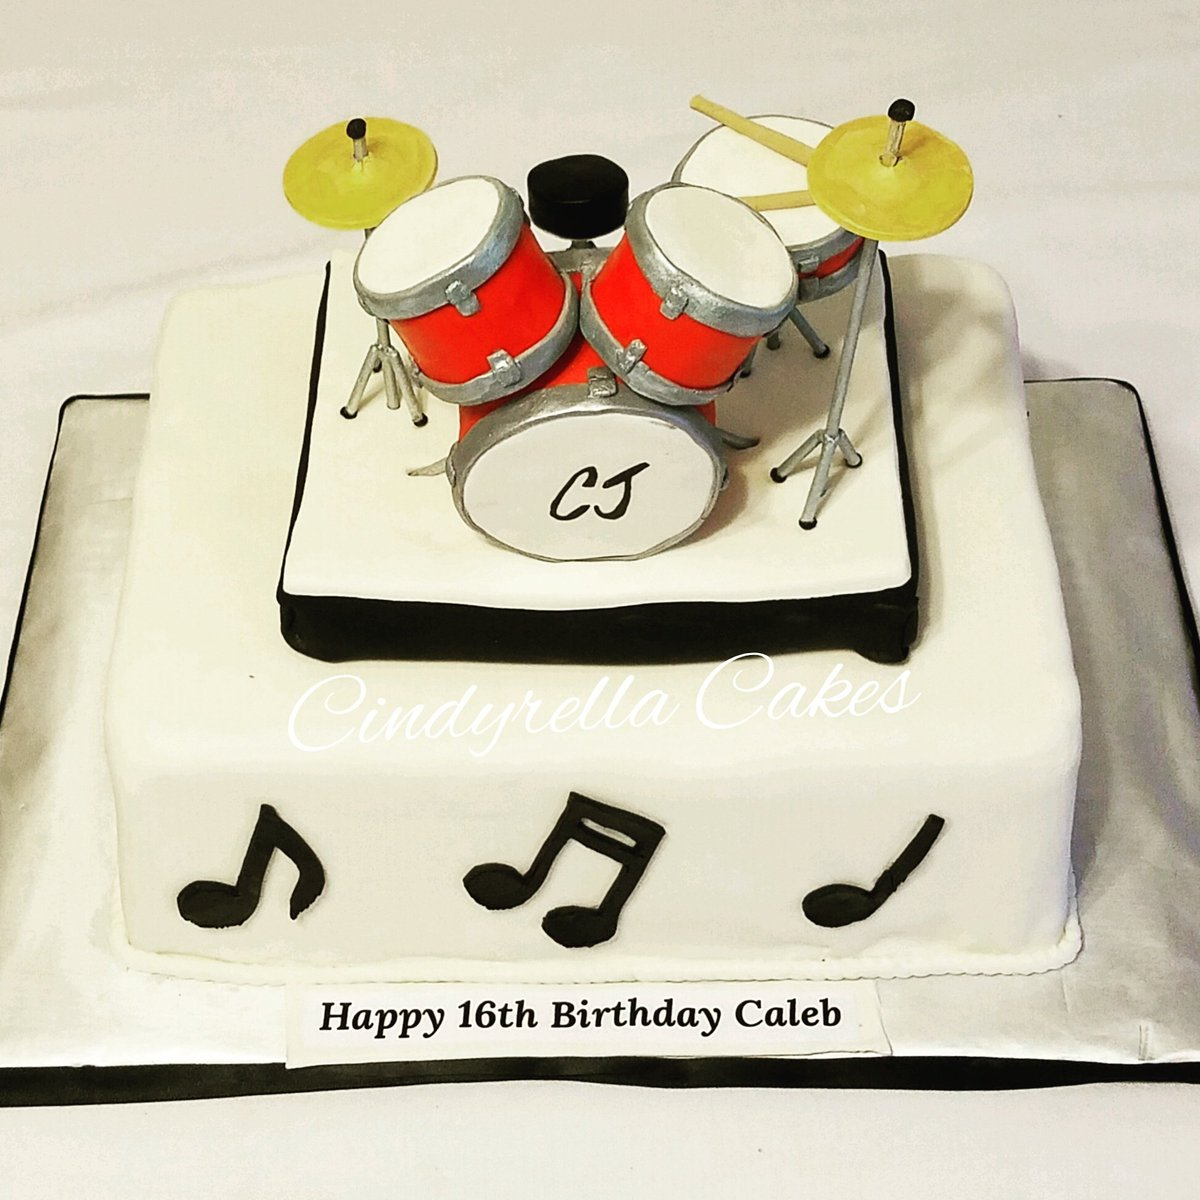 Cindyrella Cakes On Twitter Birthday Cake For The Drummer Boy